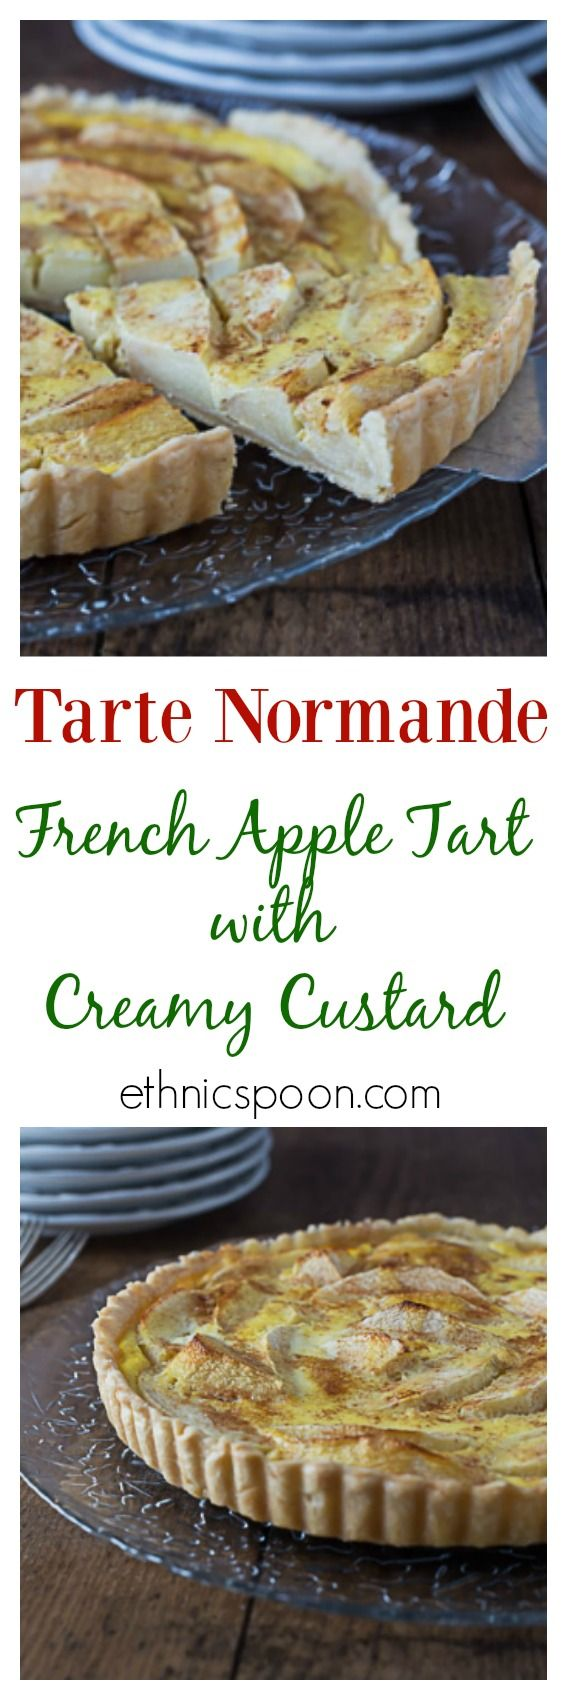 """One the most delicious apple tarts I have ever eaten! A rustic traditional dish from the northern part of France in the region of Normandy. The tarte Normande uses large slices of apple and a rich creamy custard. Some of the best cheeses come from the region as well. The use of the word """"Normande"""" usually implies a dish has cream in it. You will love this tart!   ethnicspoon.com"""